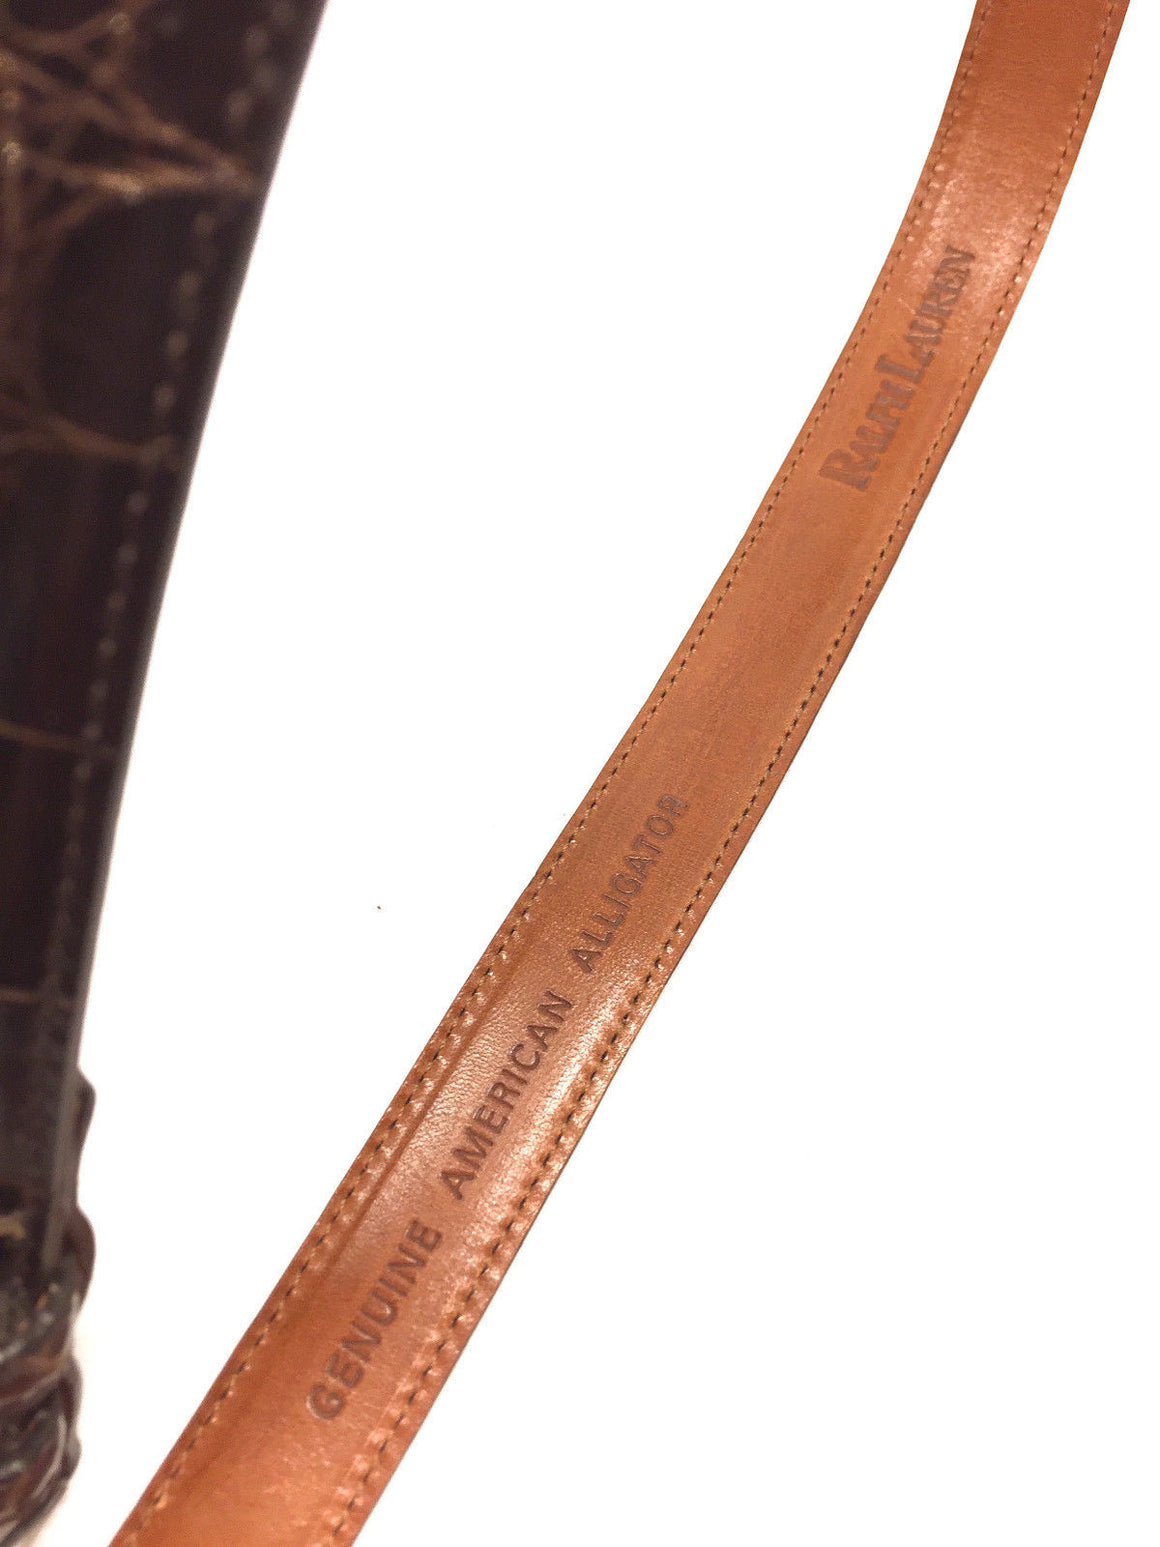 RALPH LAUREN Vintage Brown American Alligator Sterling Silver Buckle Waist Belt Size: 30 / 75